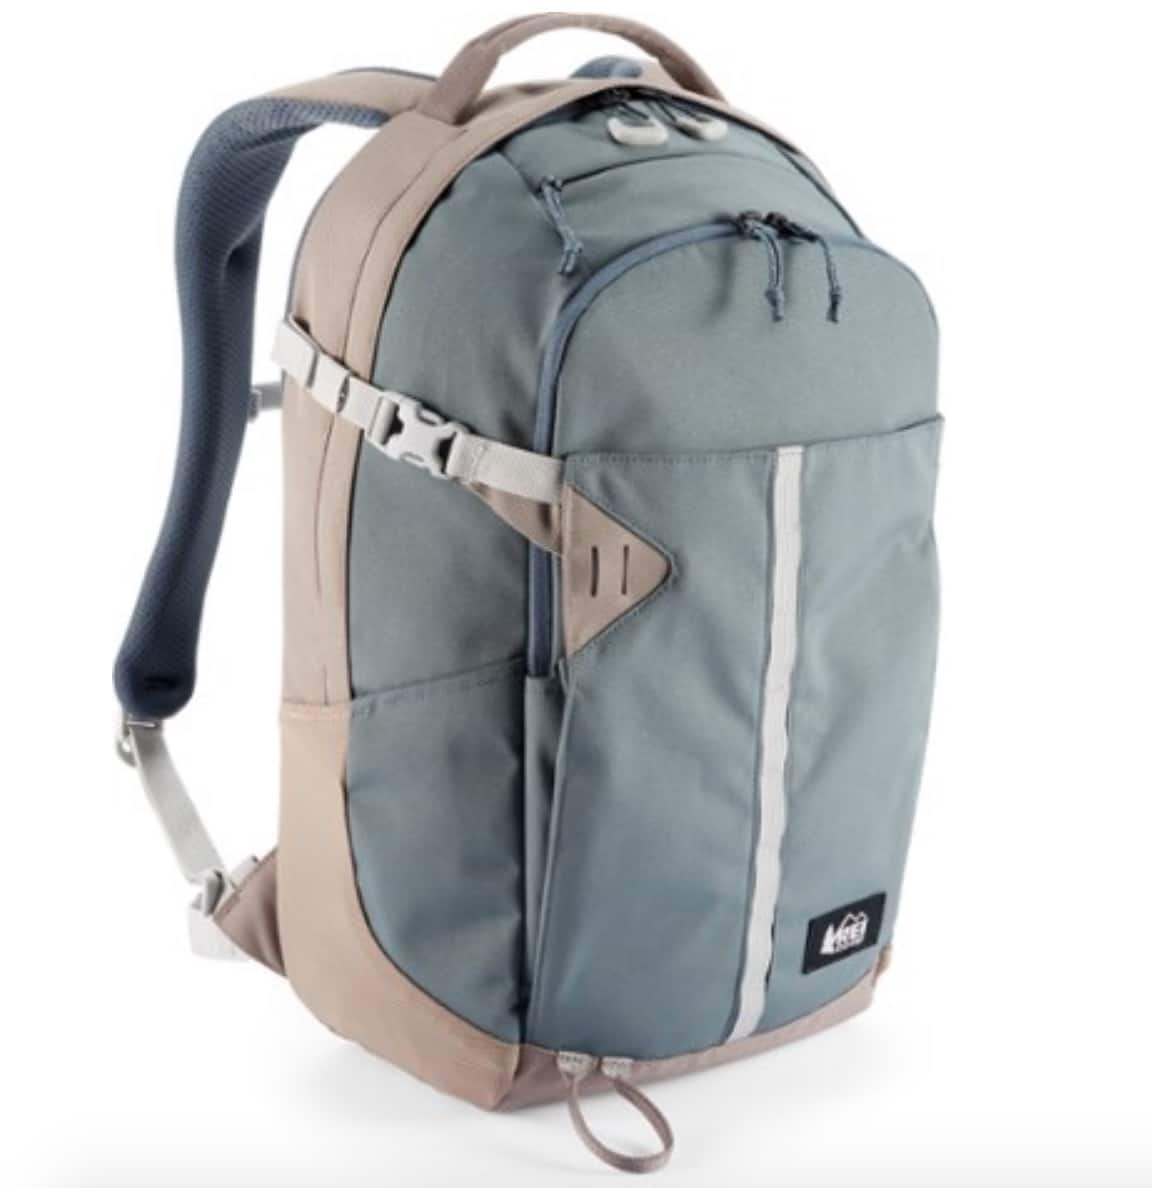 REI Co-op Workload Pack